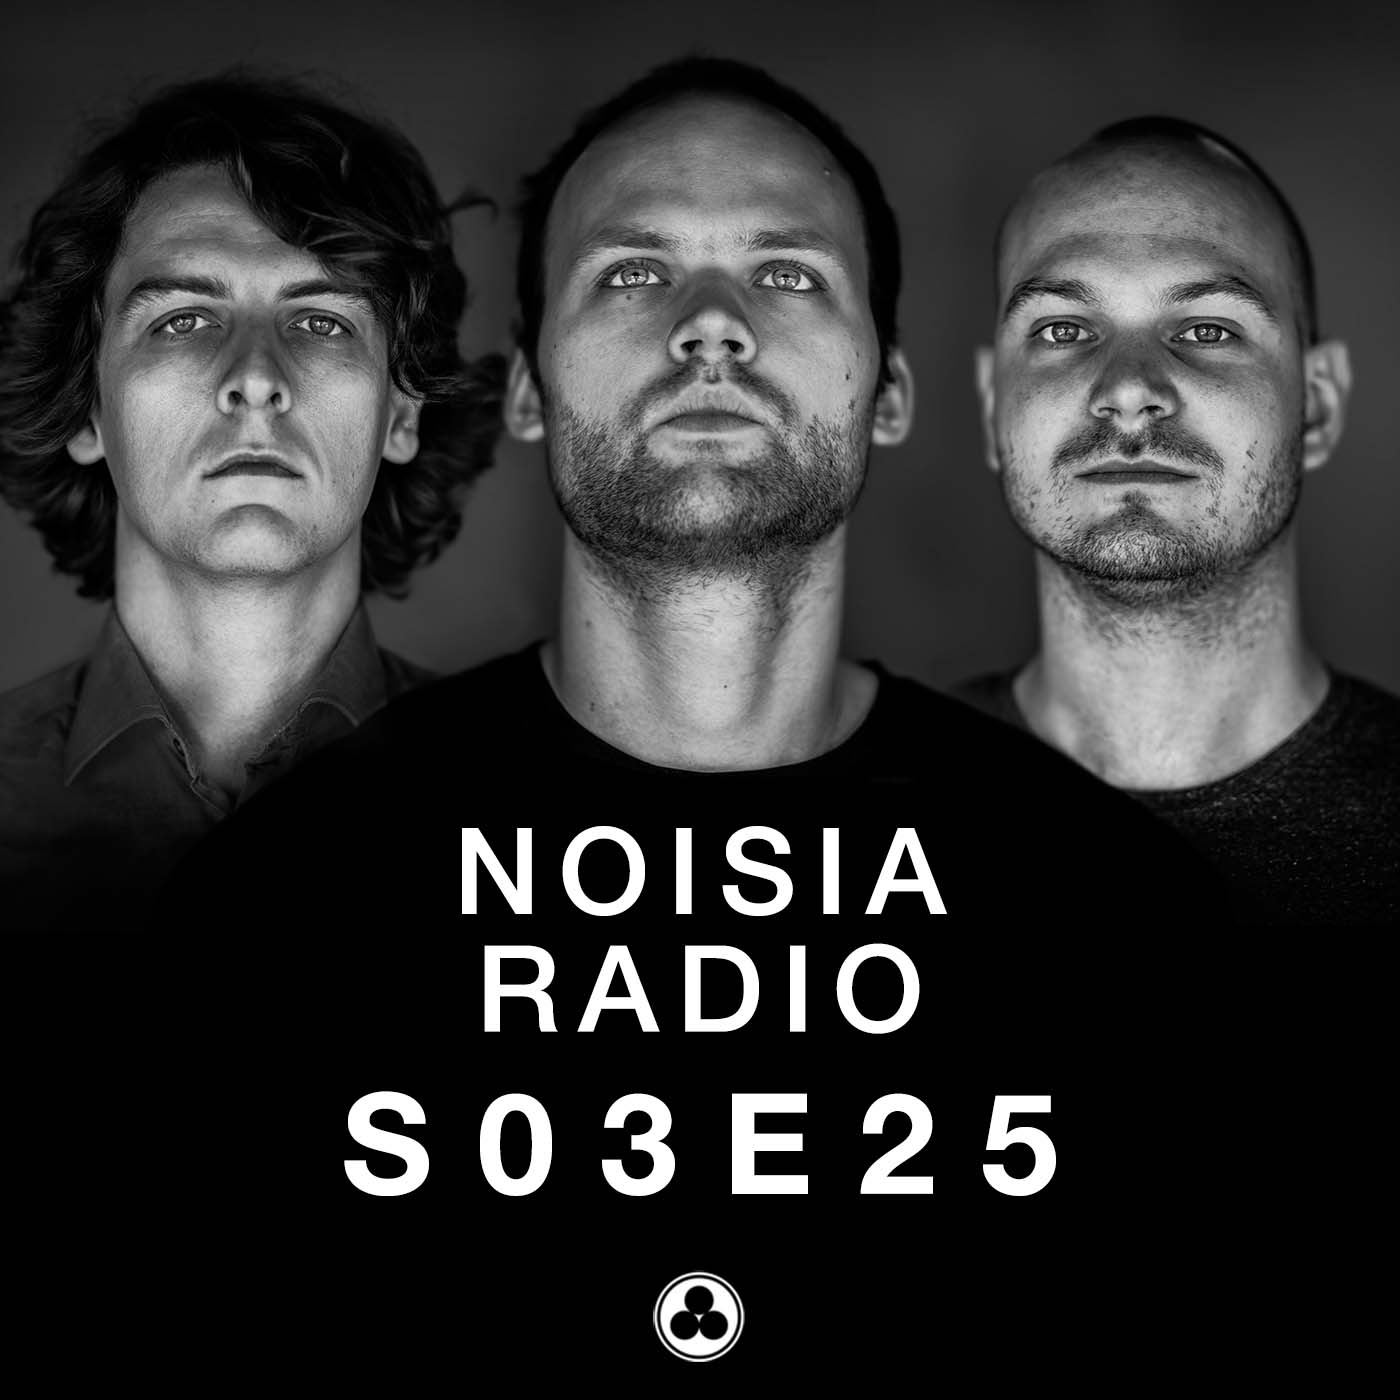 Noisia Radio S03E25